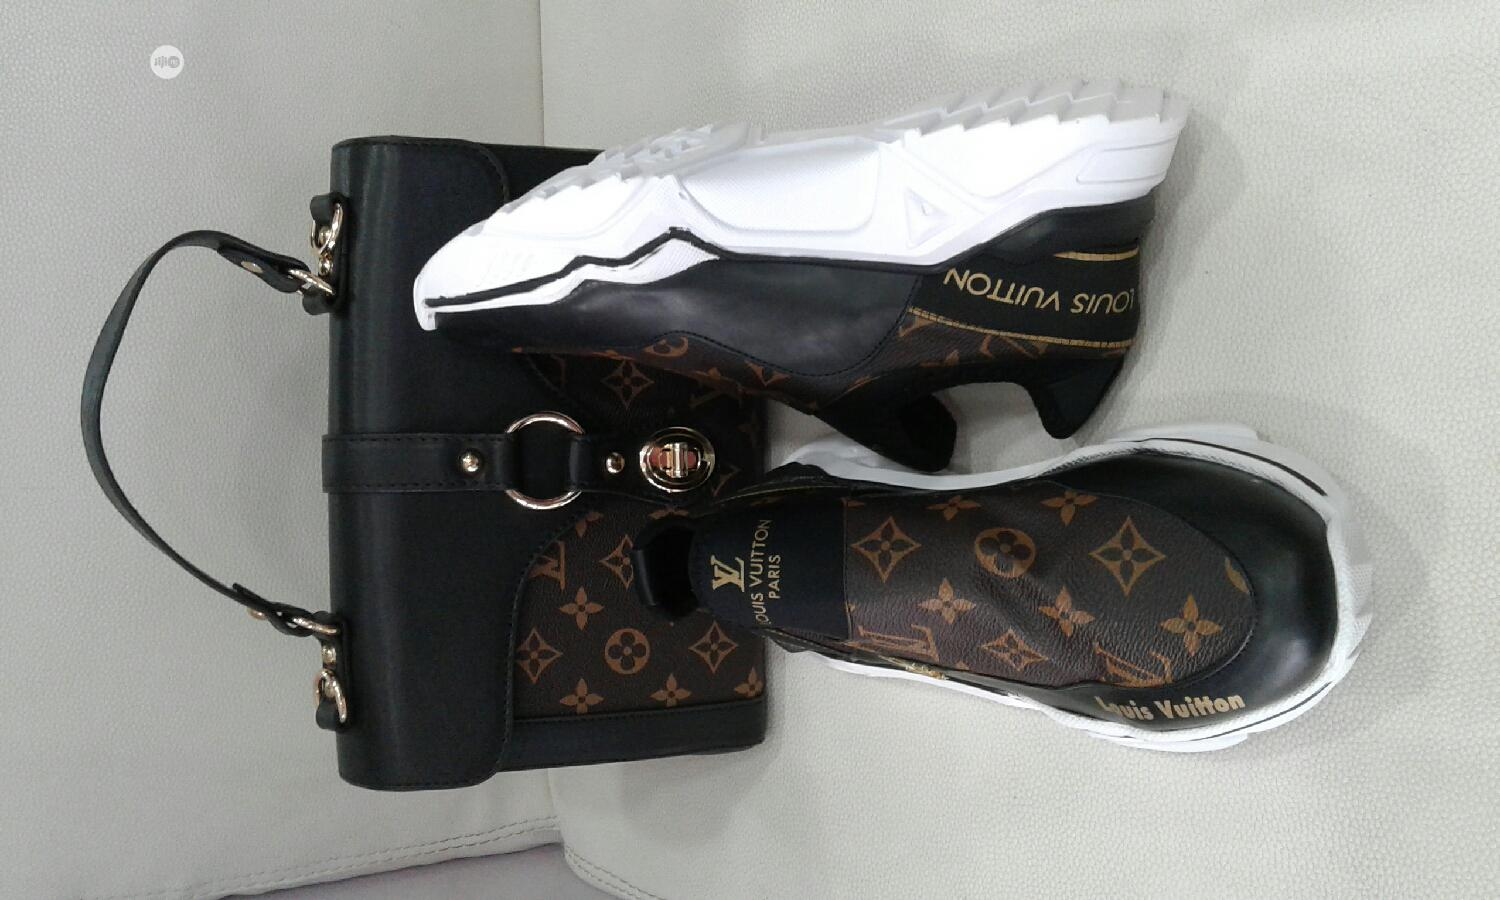 Louis Vuitton Bag With Shoe and Purse